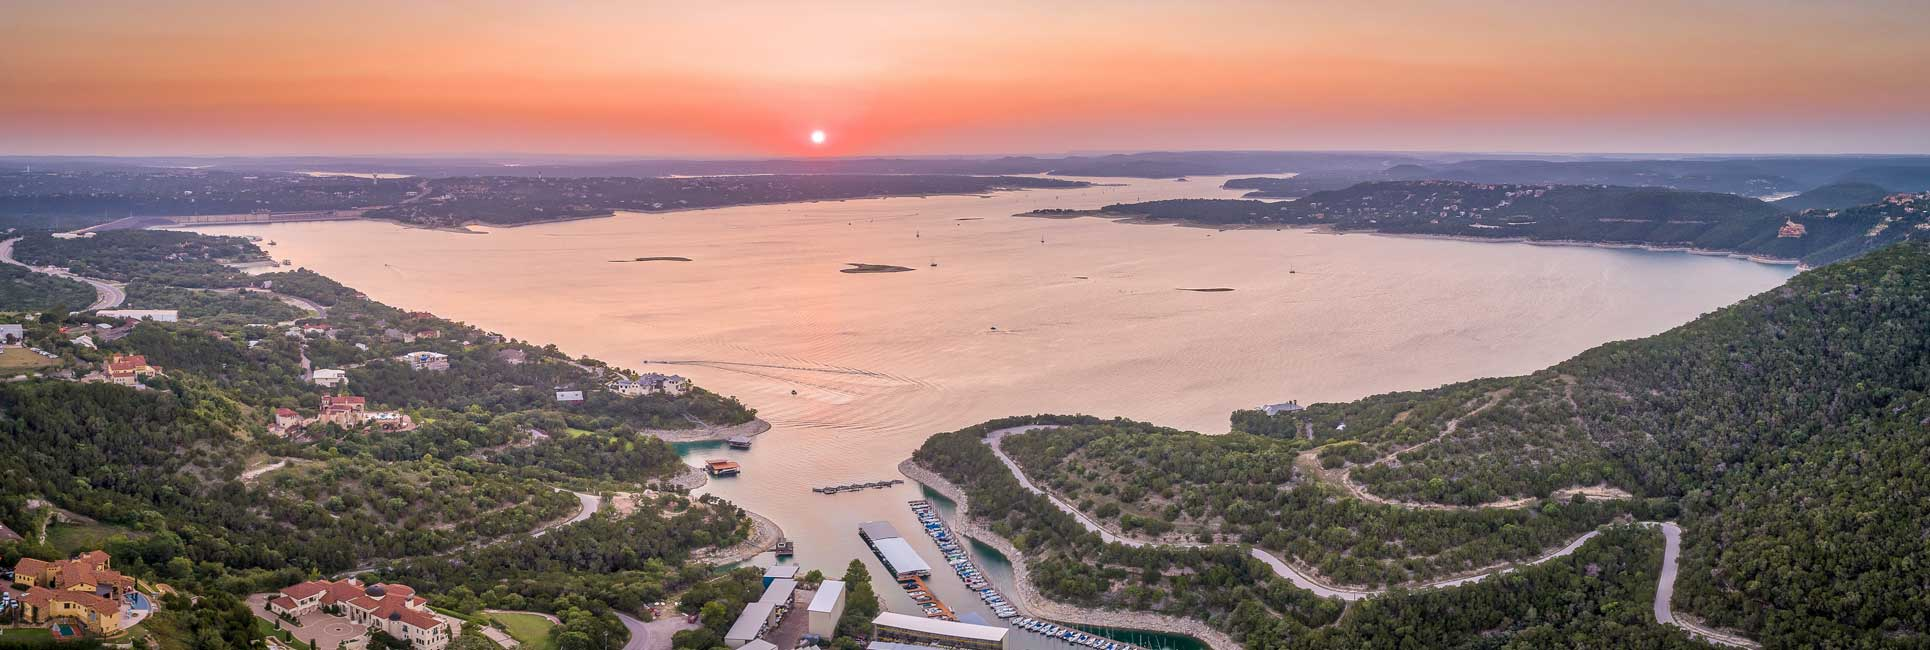 Sun setting over Lake Travis, Texas